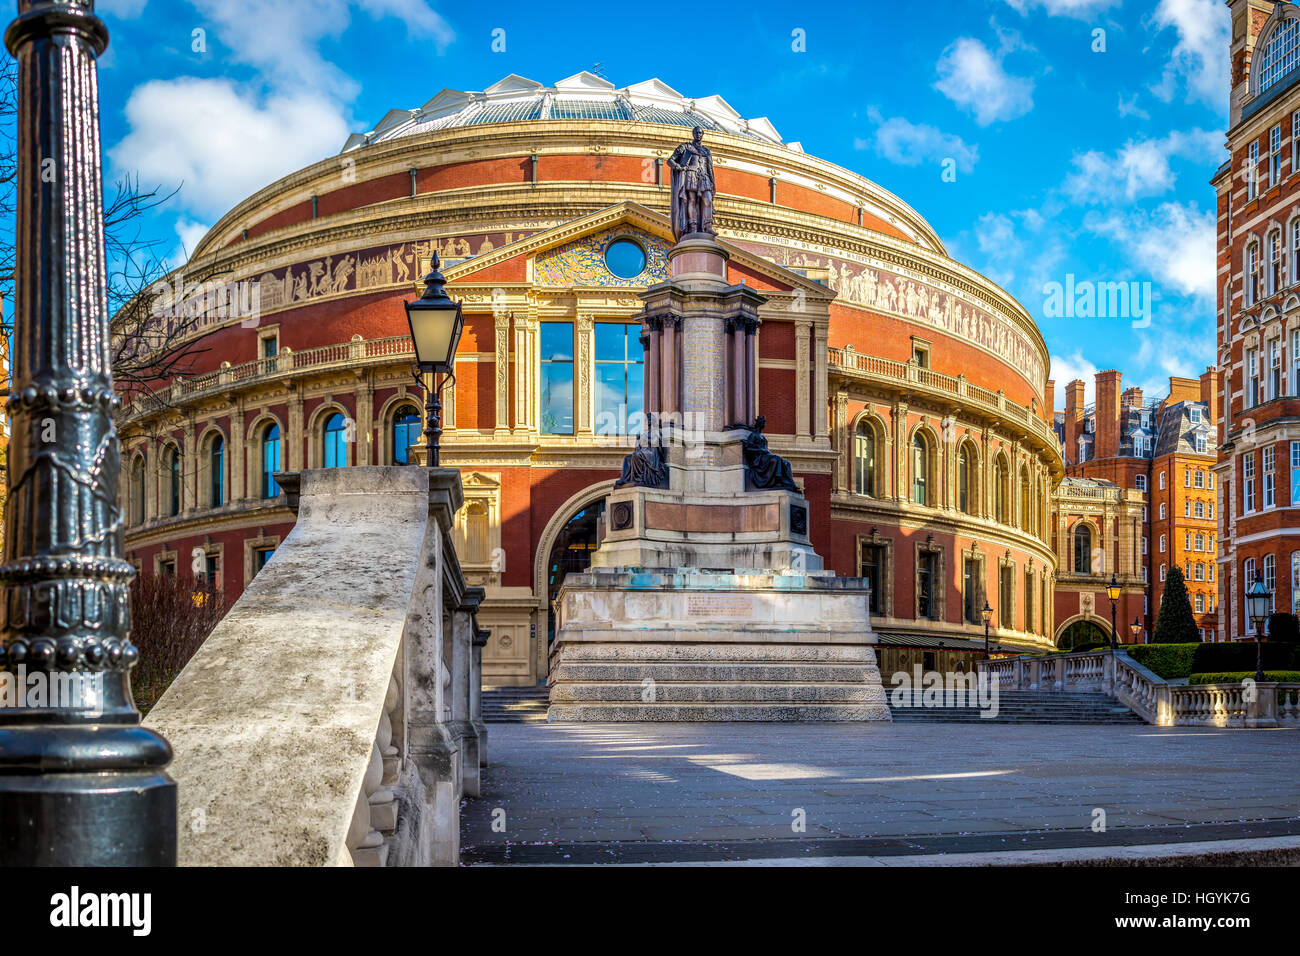 Die Royal Albert Halleneingang in South Kensington, London, UK Stockbild